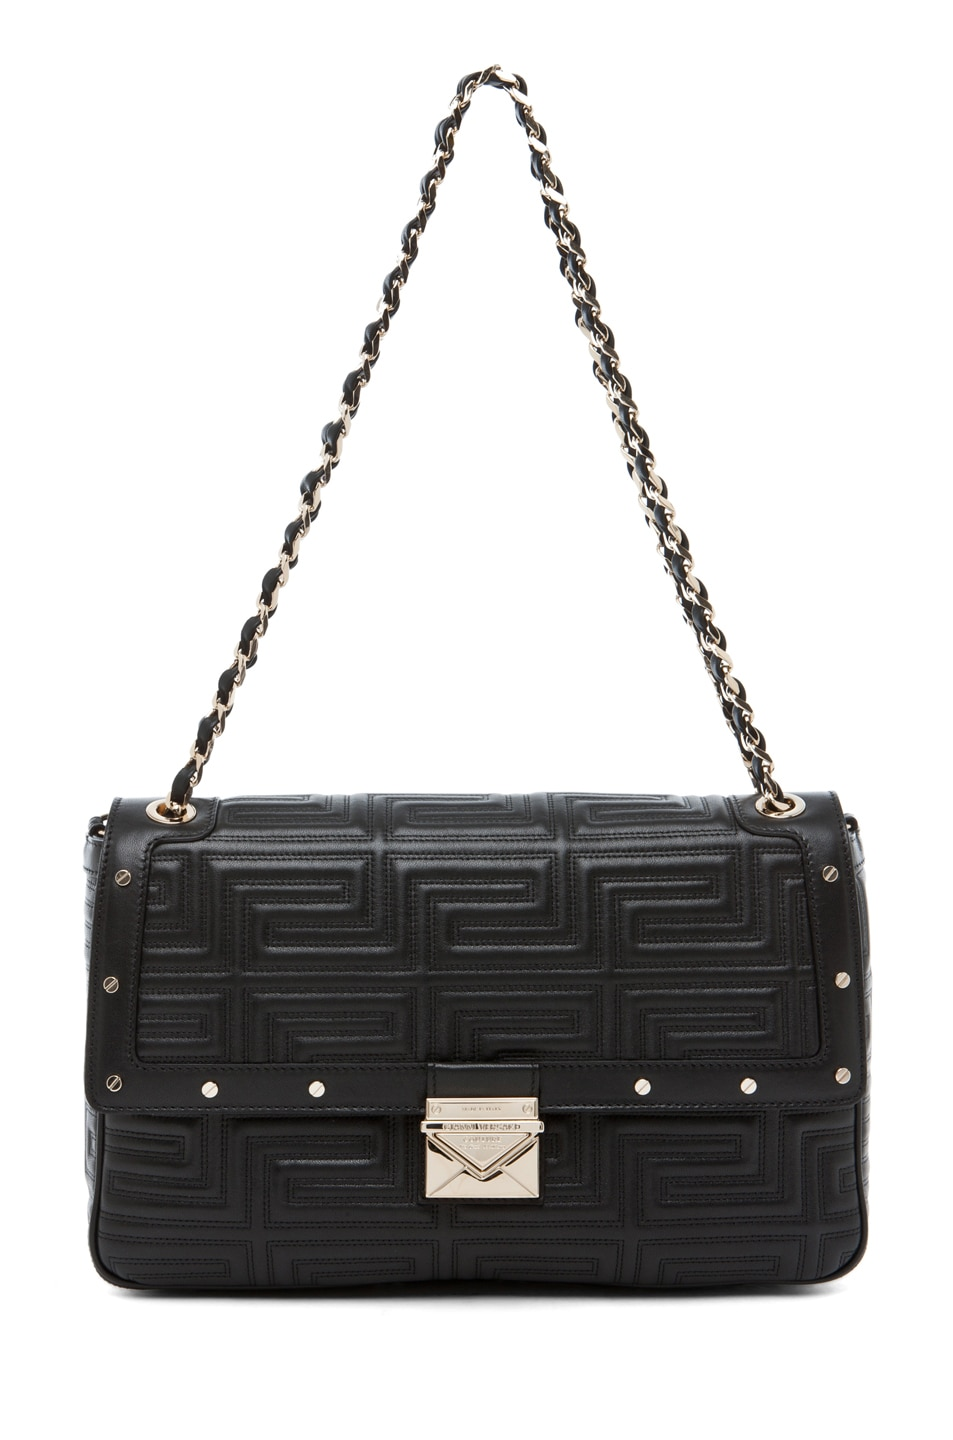 Image 1 of VERSACE Lamb Leather Handbag in Black